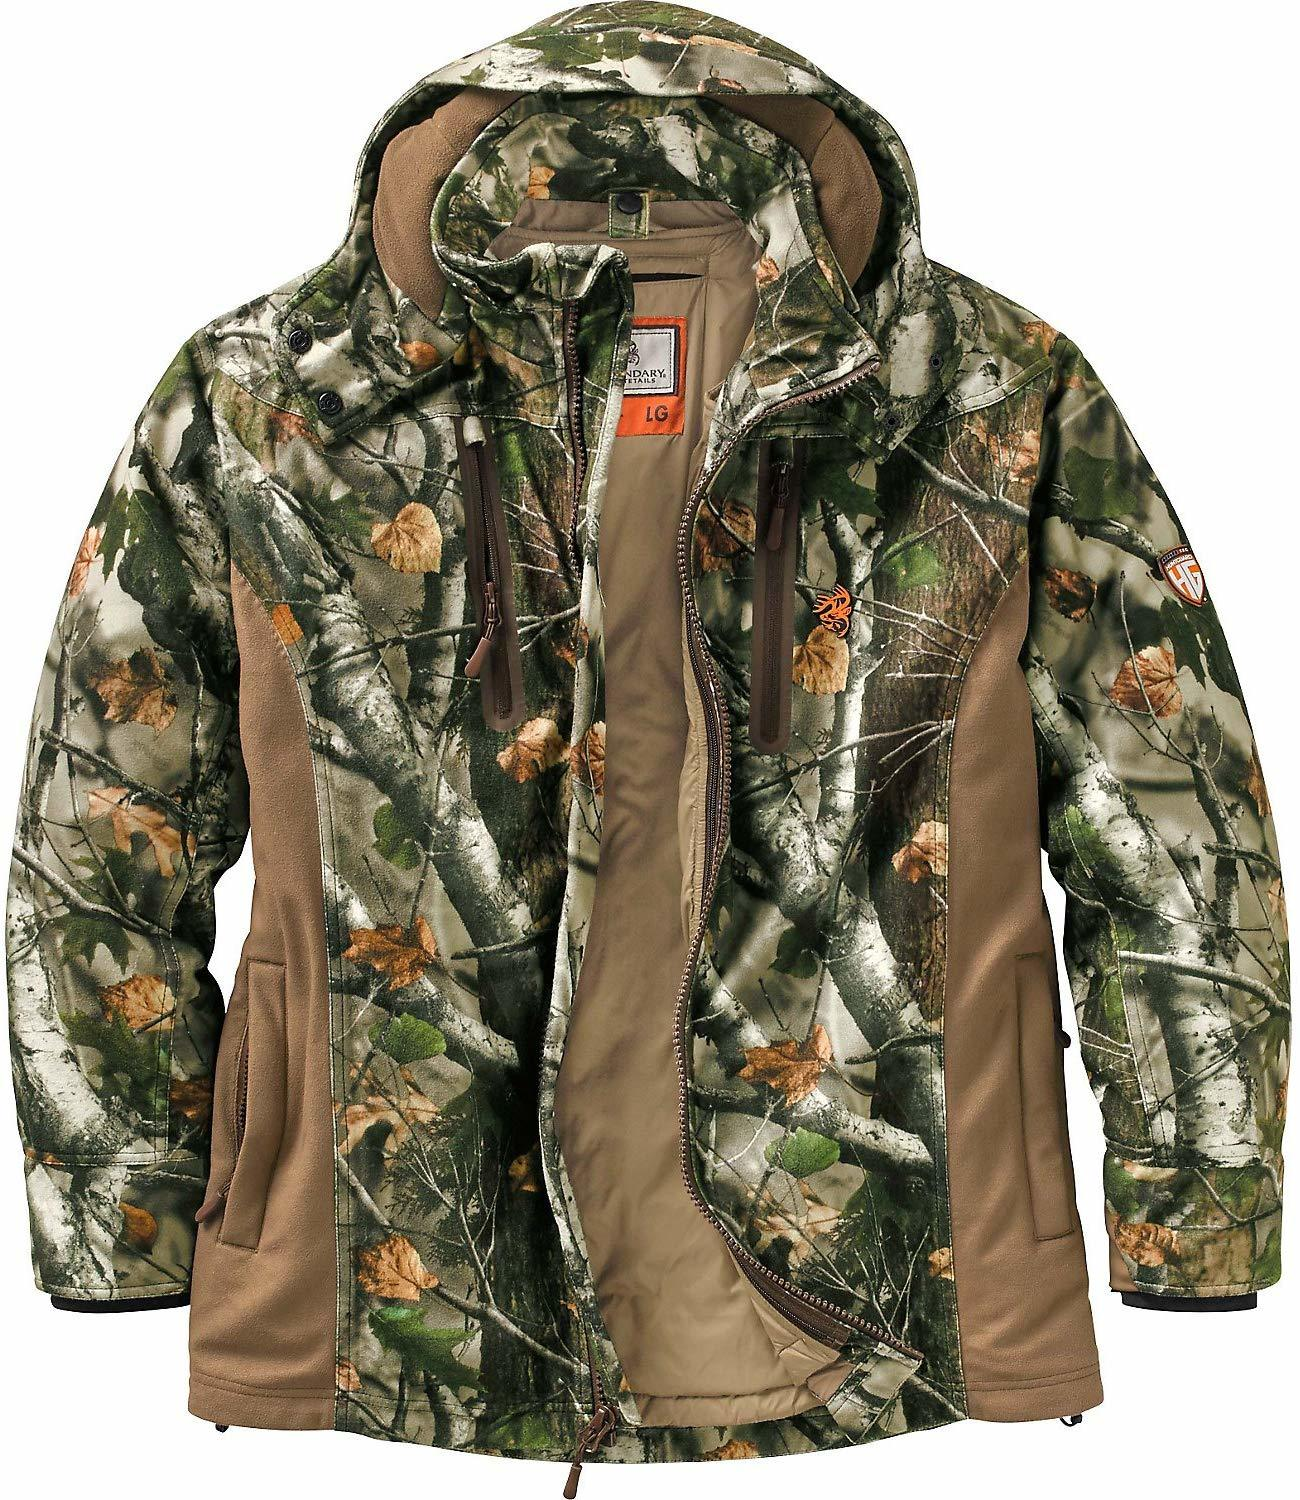 Legendary Whitetails Men's HuntGuard Reflextec Hunting Jacket